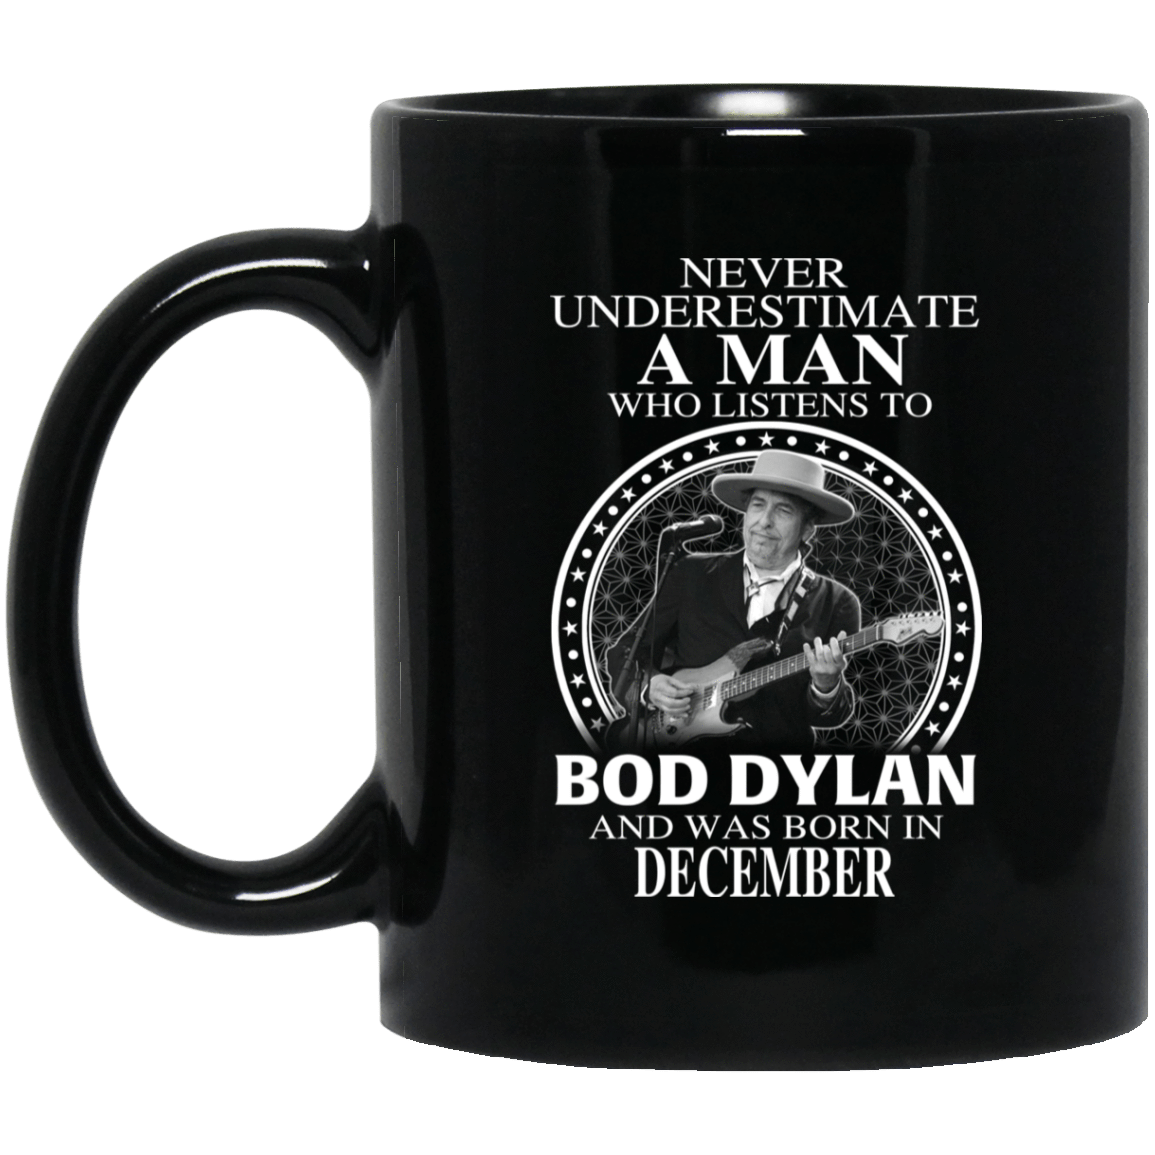 A Man Who Listens To Bob Dylan And Was Born In December Mug 1065-10181-76154701-49307 - Tee Ript